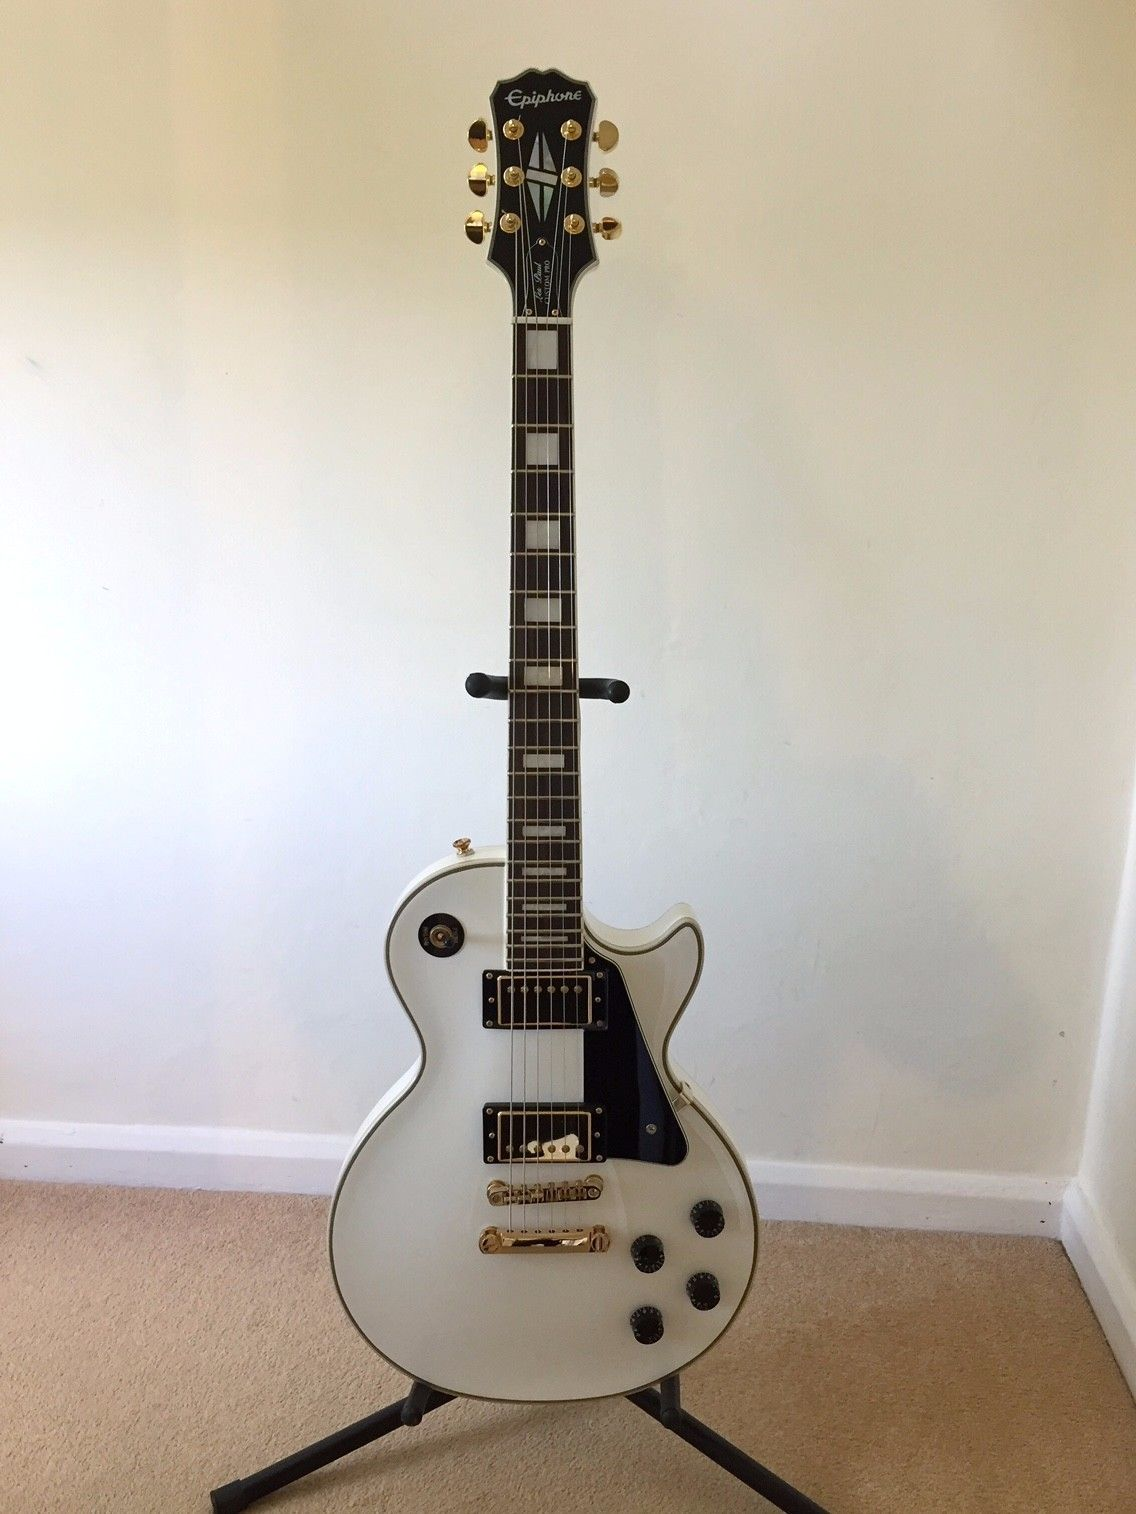 Wiring Diagram Epiphone Les Paul Prophecy Ex Library As Well On Guitar Custom Pro Electric Alpine White